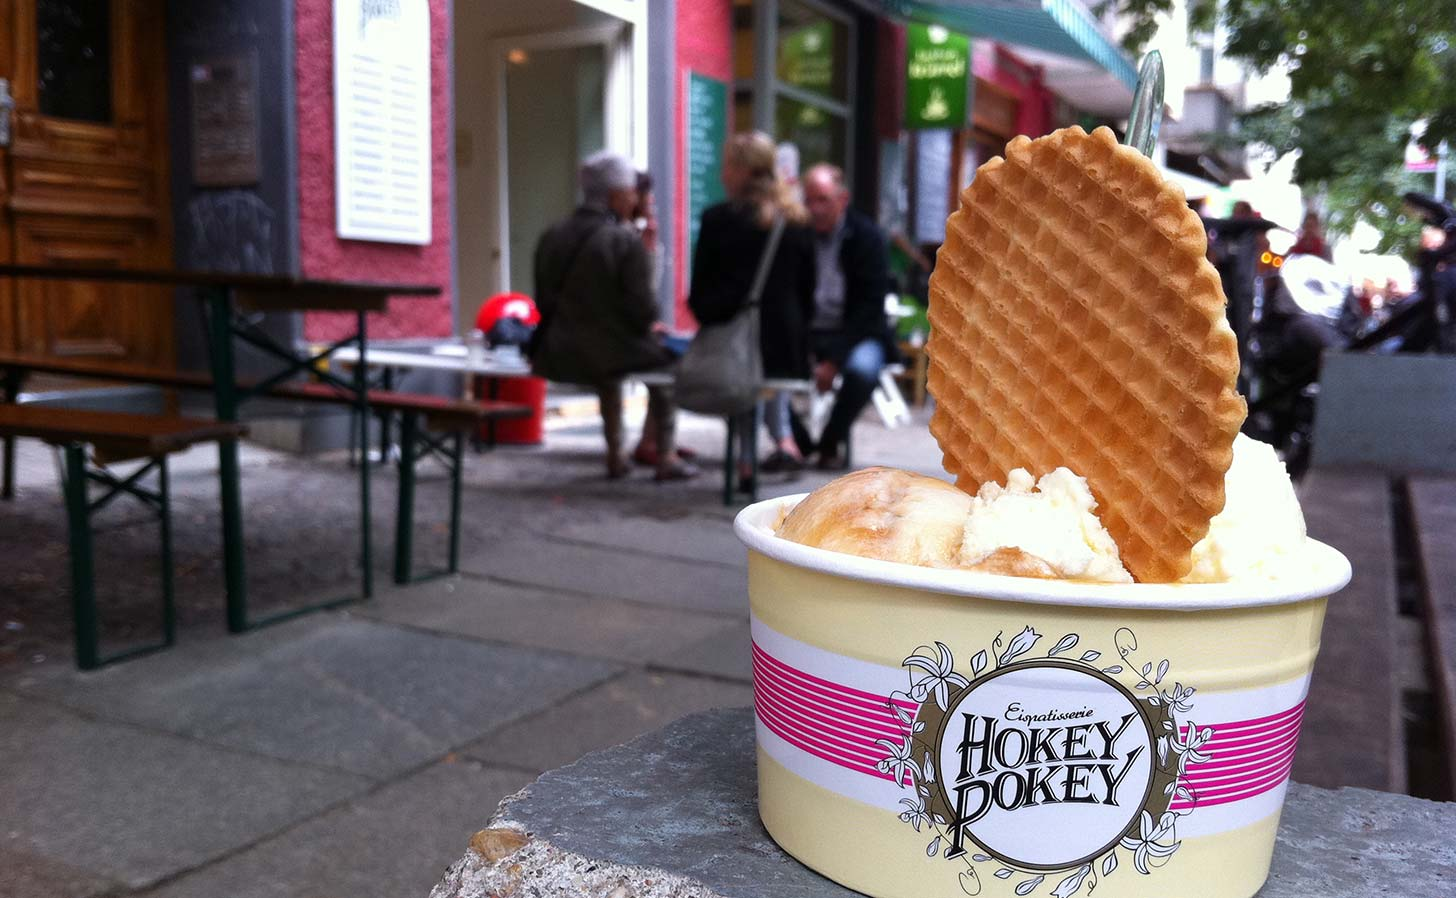 Hokey Pokey in Prenzlauer Berg. Photo: Berlinow